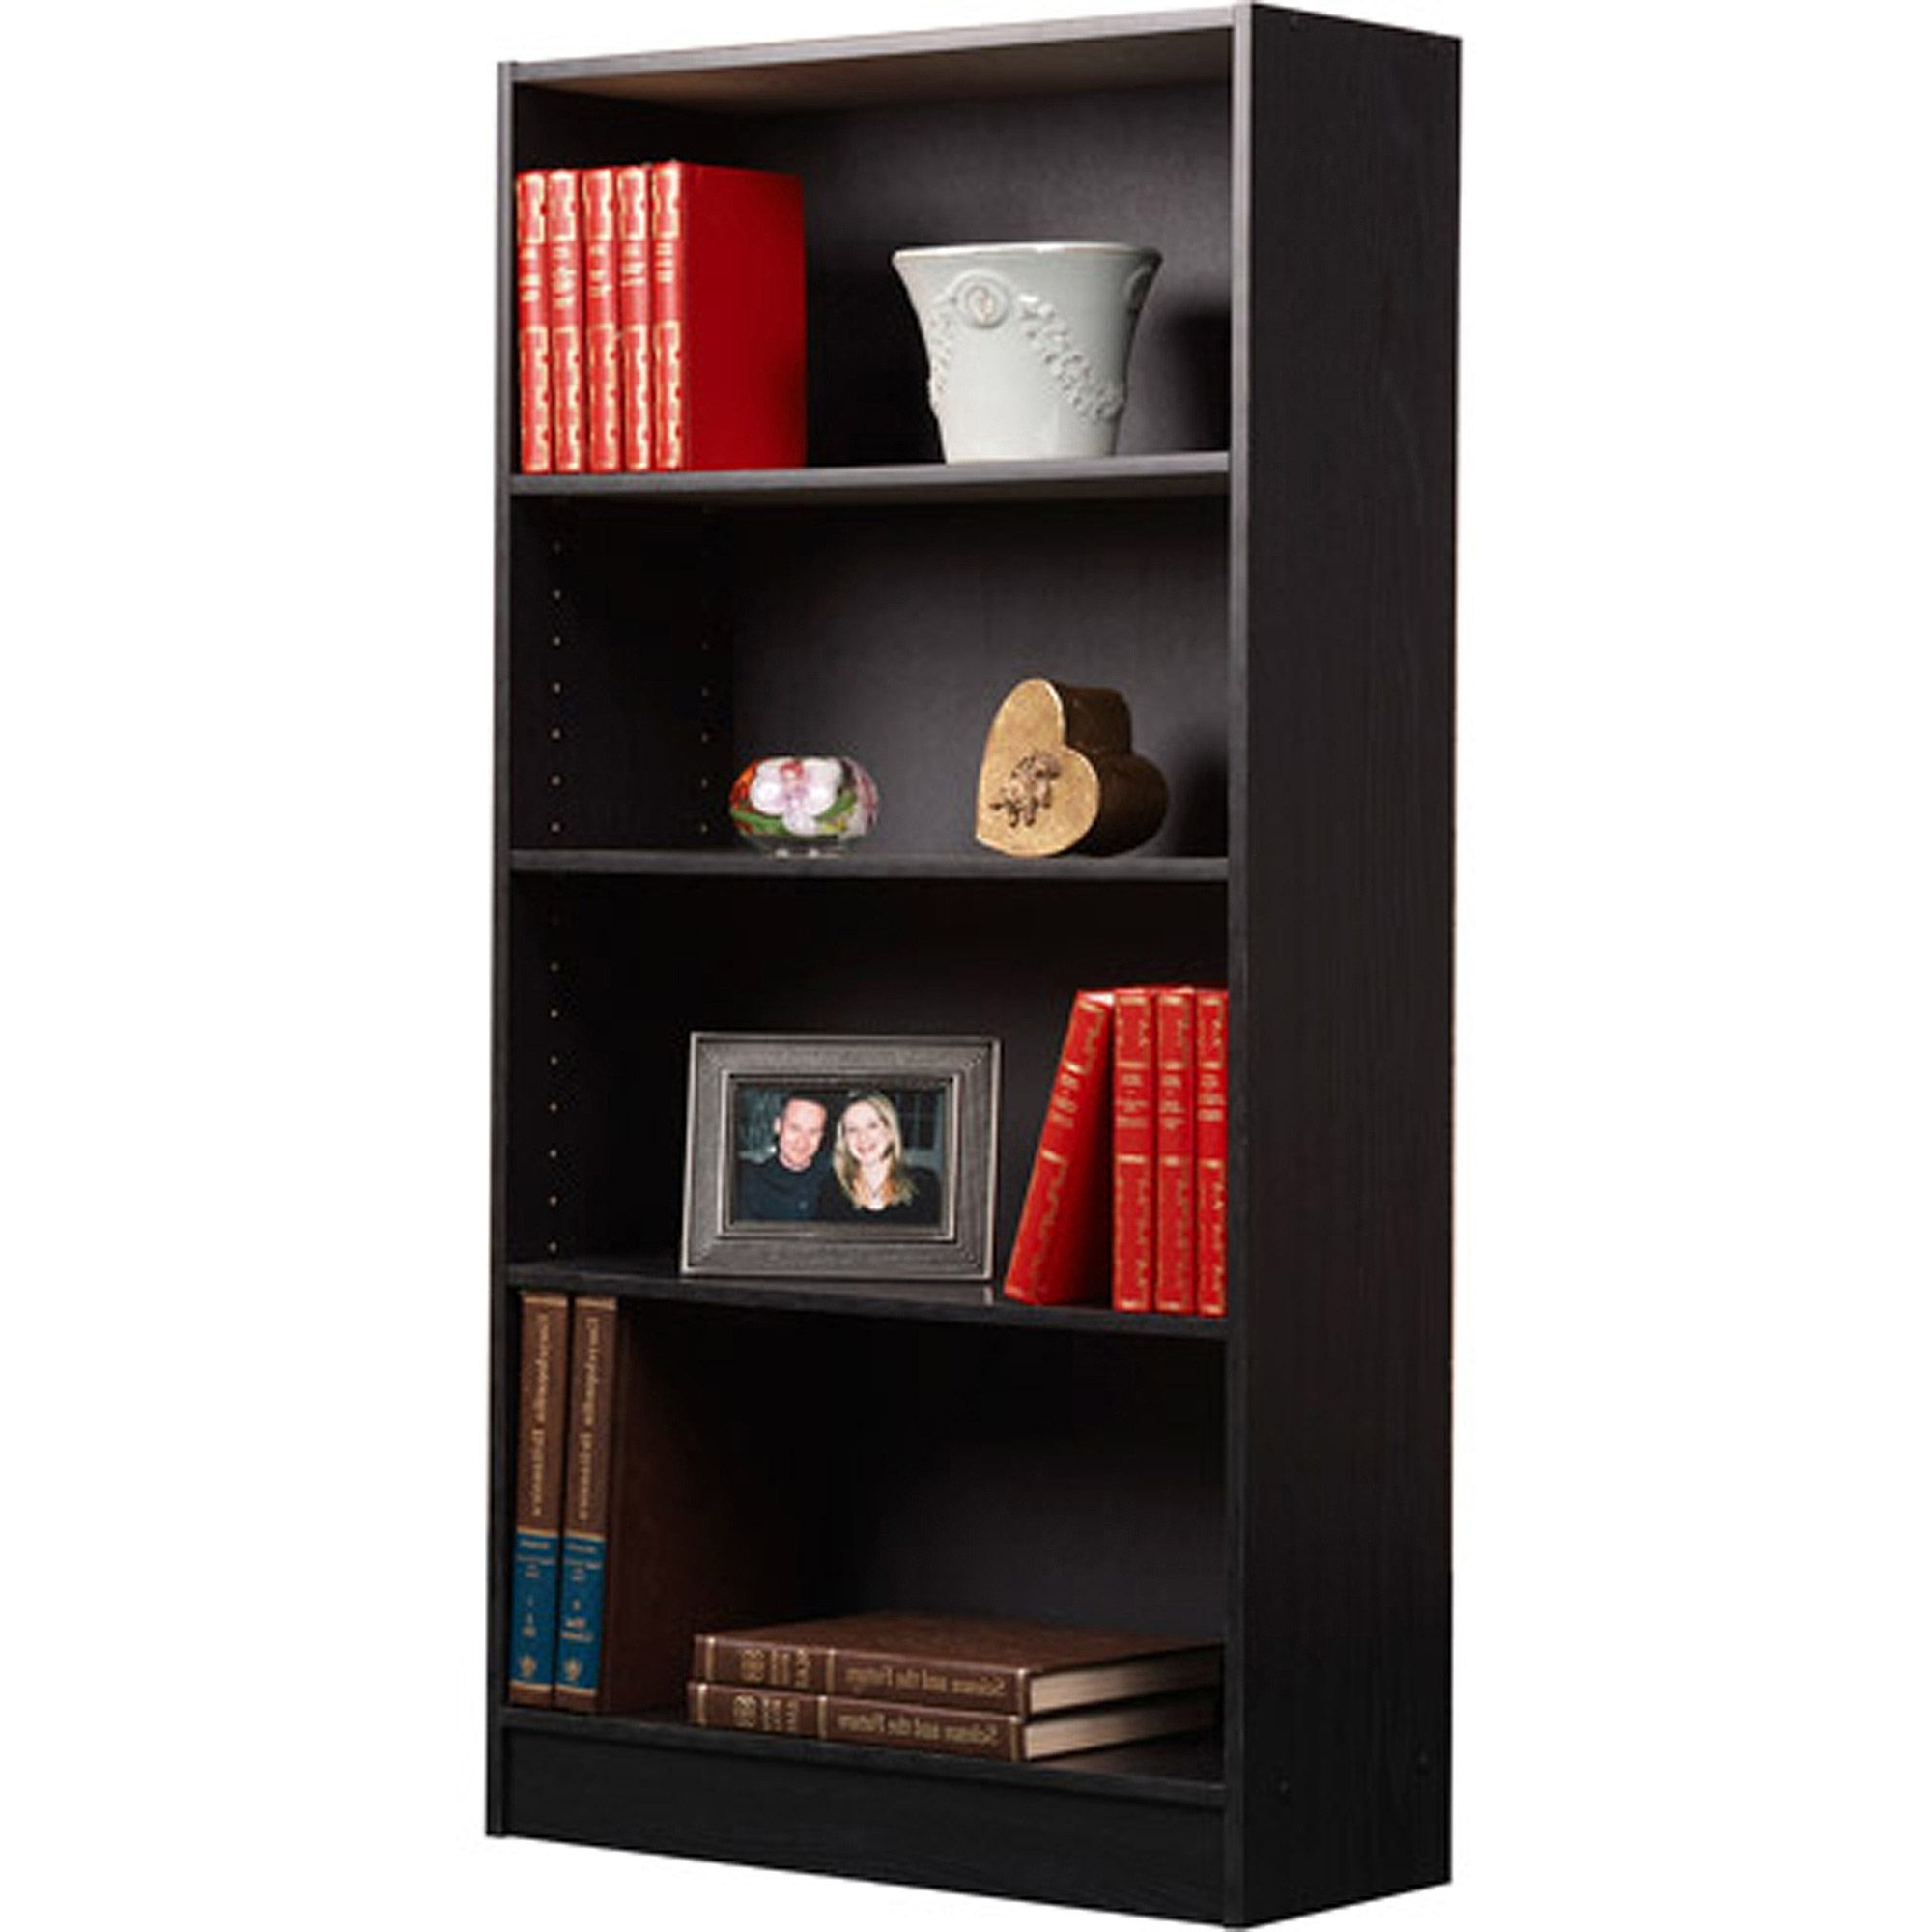 Walmart 3 Shelf Bookcases Inside Well Known Orion 4 Shelf Bookcases, Set Of 2 – Walmart (View 9 of 15)